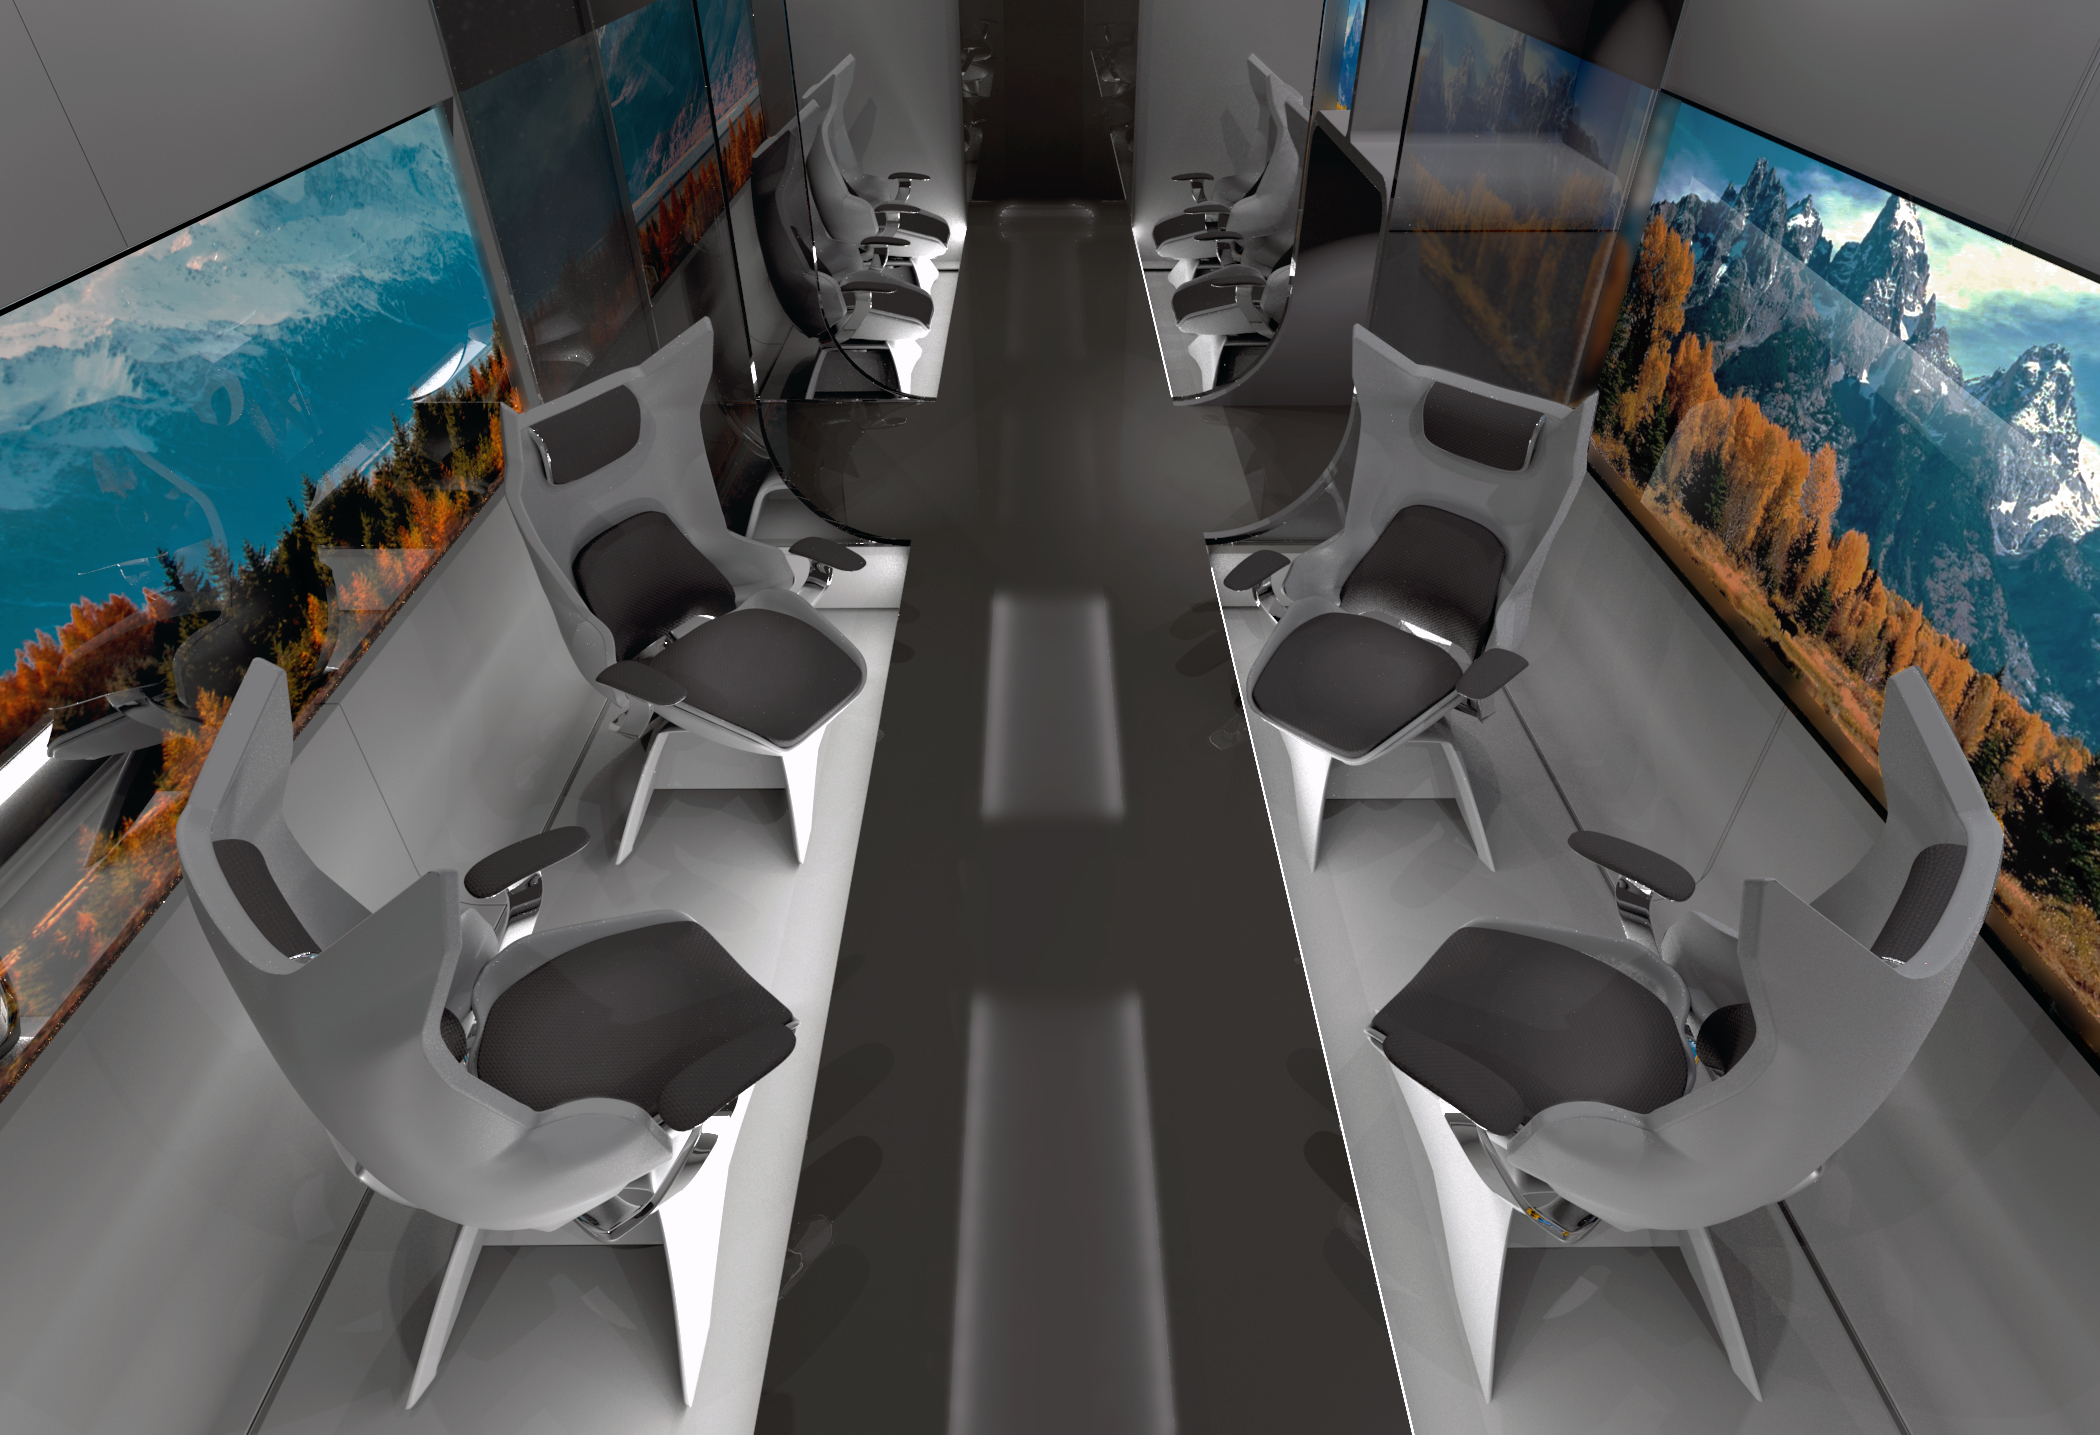 We designed rotating chairs to accommodate for user-directed community. Giving riders control over when and how they engage with others allows for natural, organic interactions. This design allows you to look outside, converse with each other, or work privately - your choice.